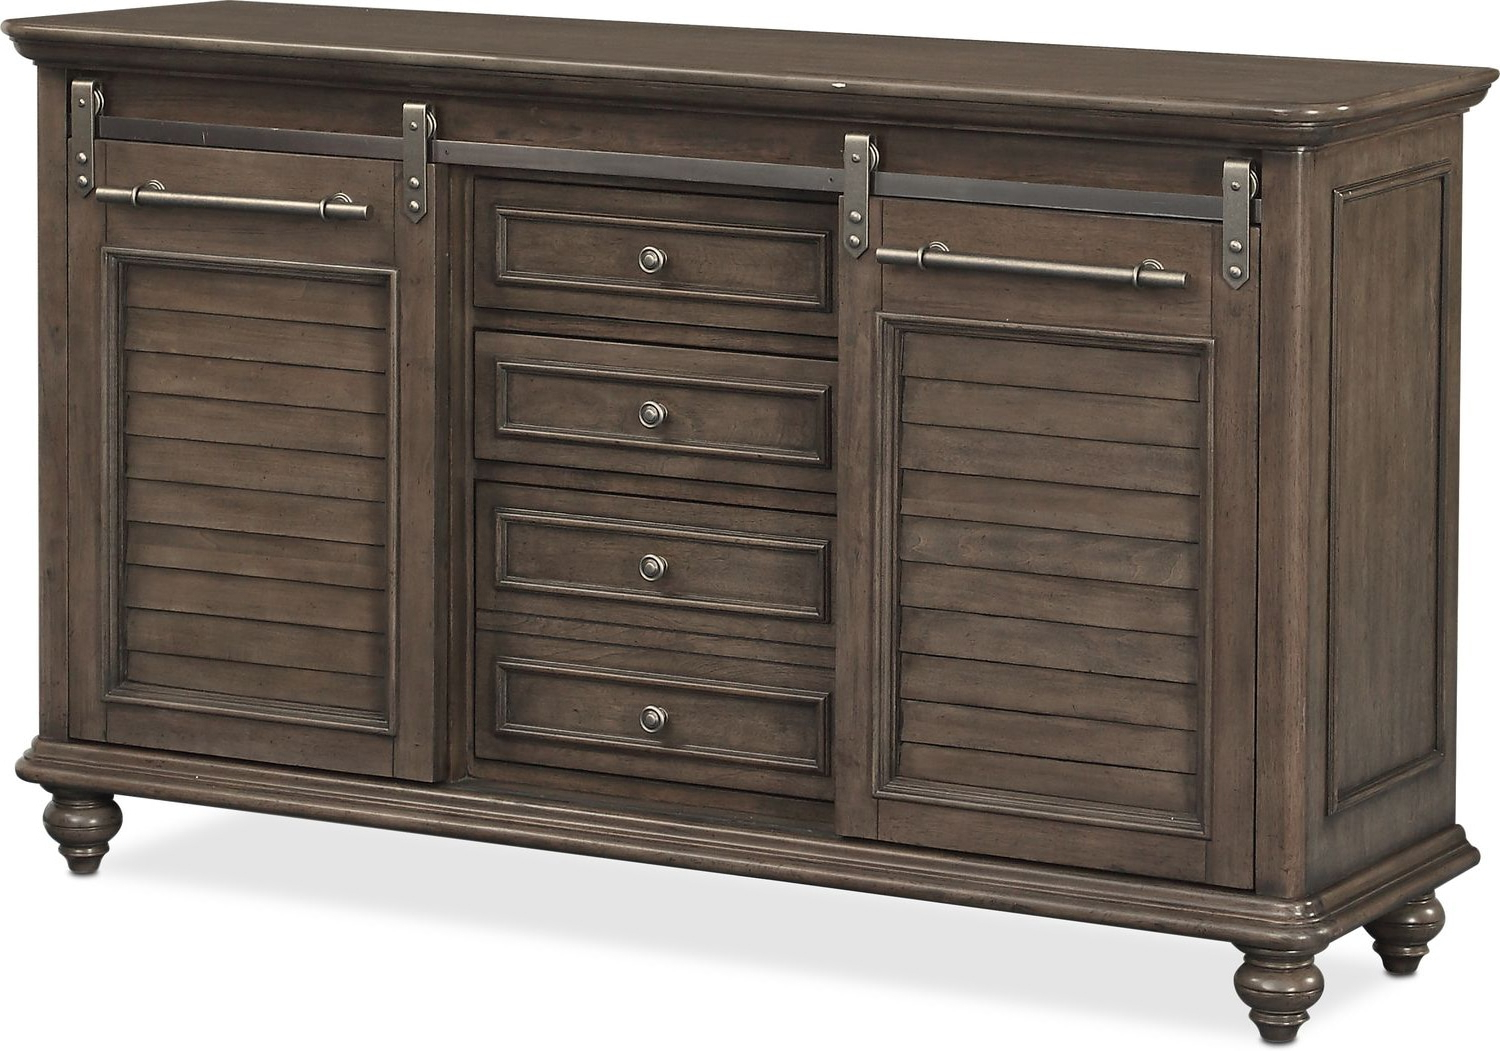 Buffet & Sideboard Cabinets | American Signature Pertaining To Kratz Sideboards (View 10 of 20)